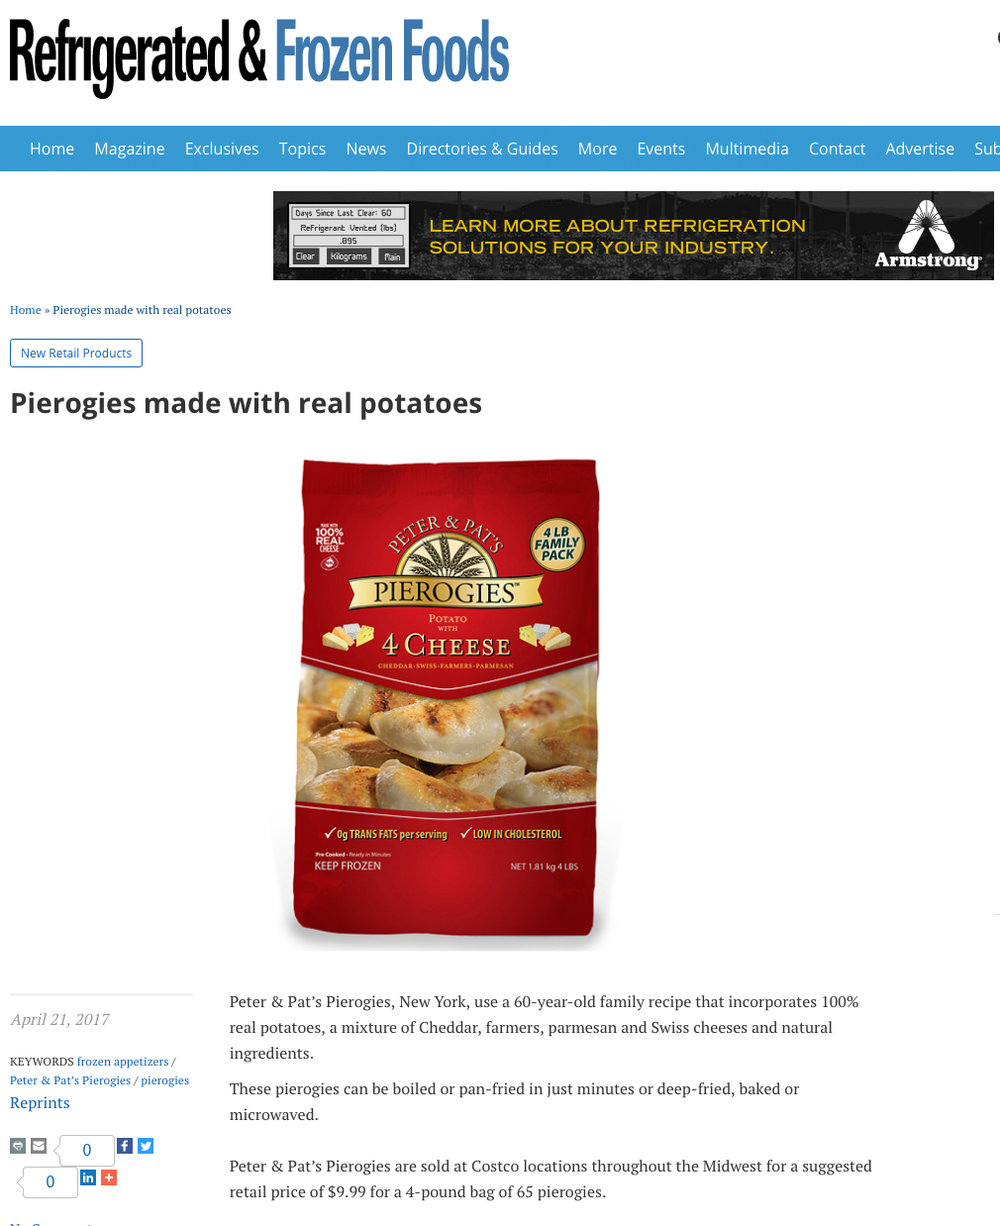 Peter & Pat's Pierogies featured in Refrigerated & Frozen Foods